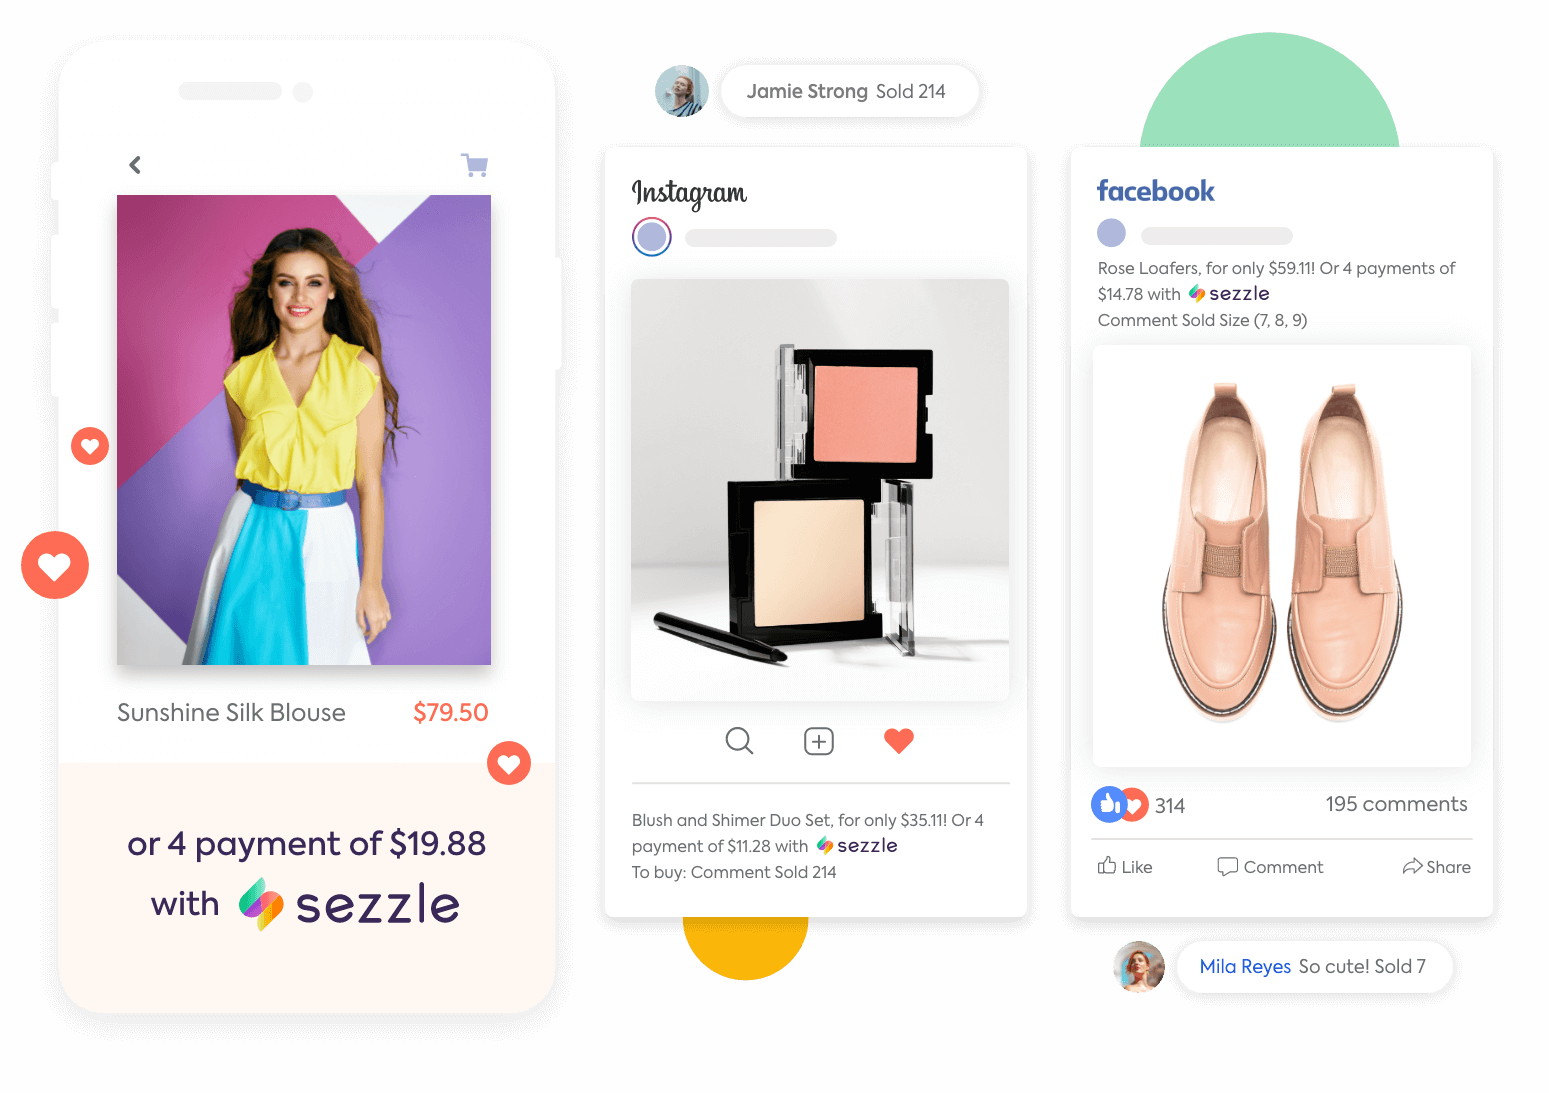 A product with Buy Now Pay Later option offered through Sezzle next to Facebook and Instagram posts selling products with comment purchases